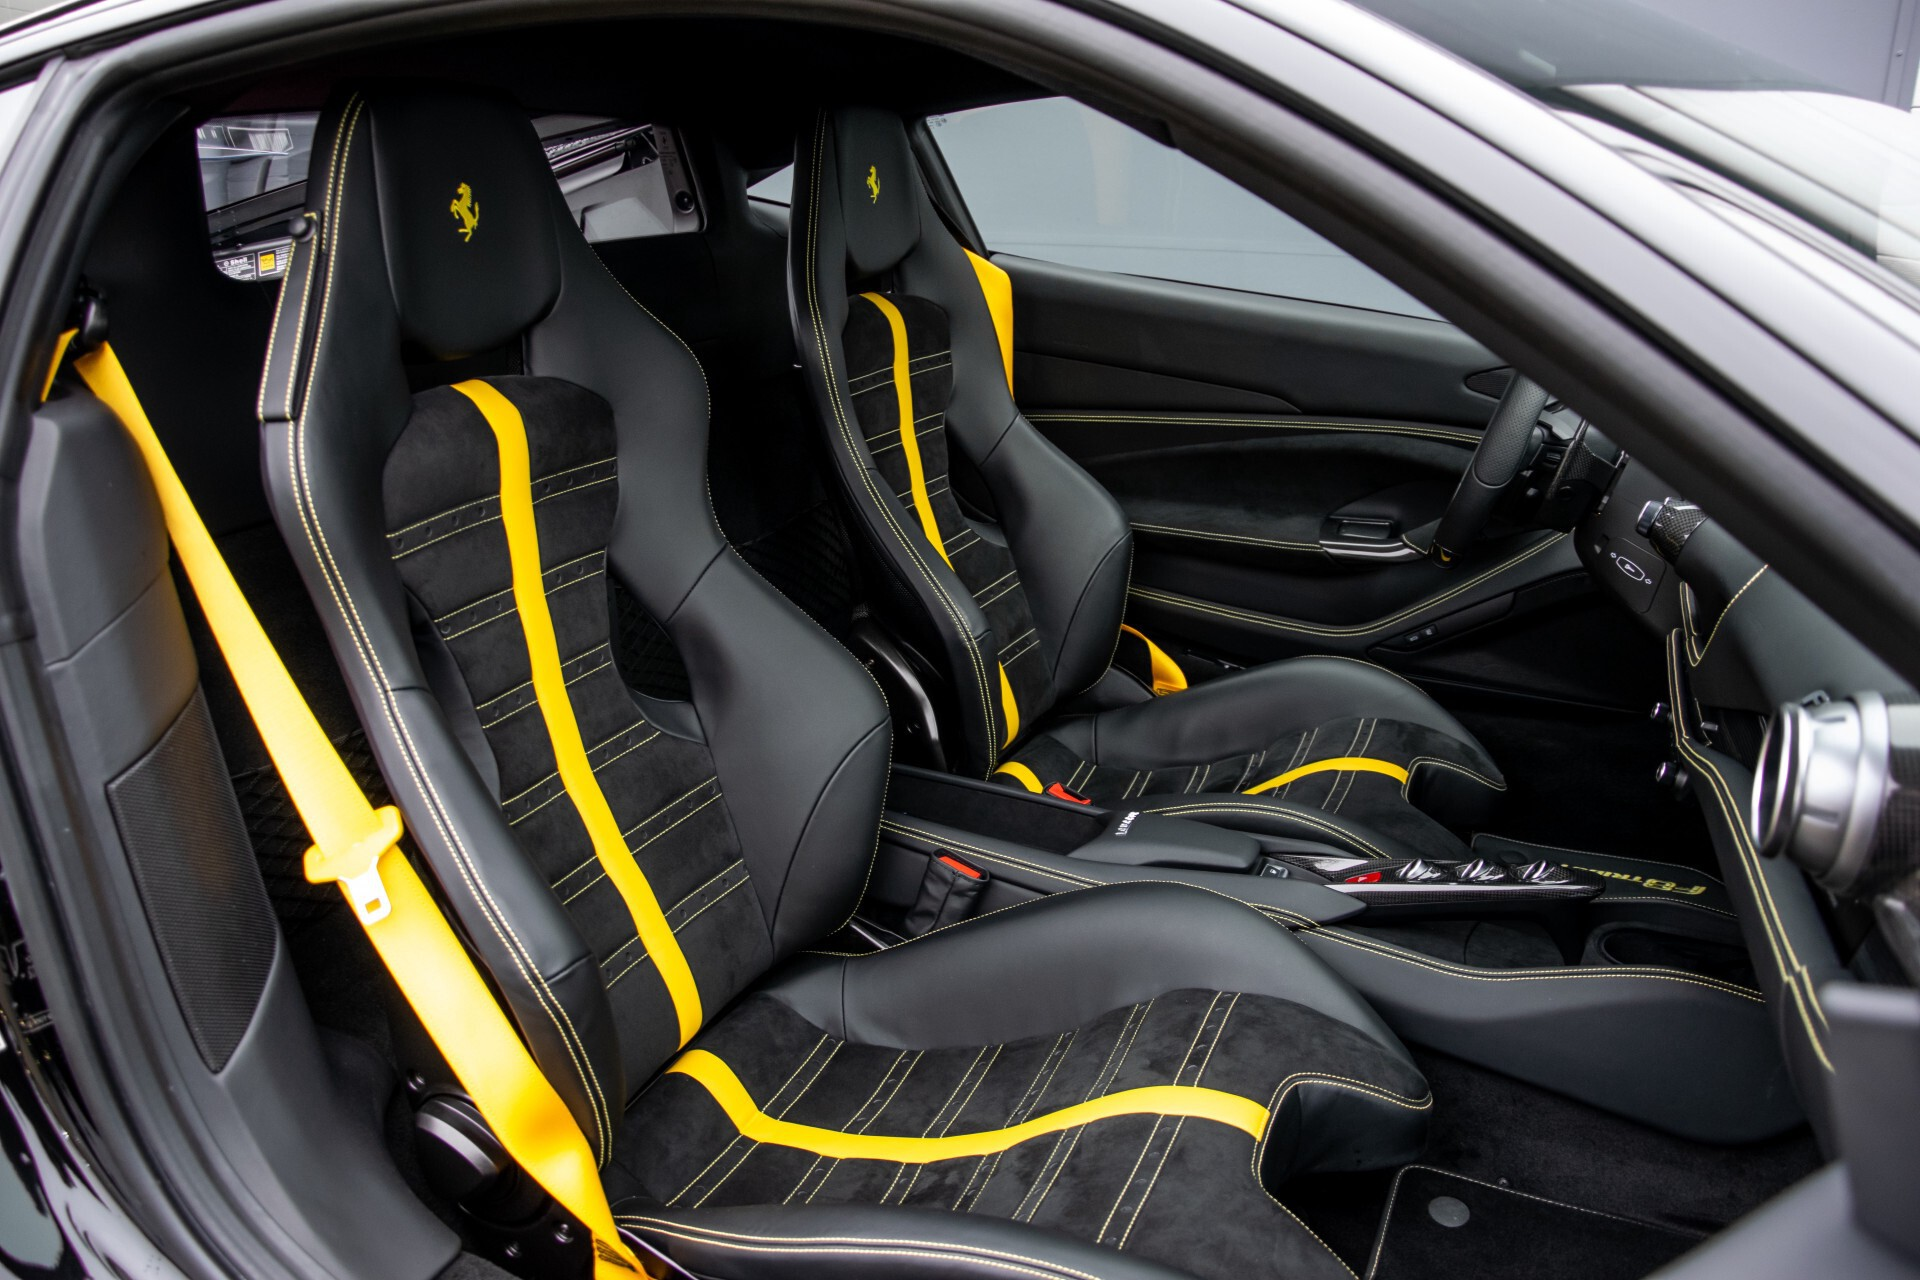 Ferrari F8 Tributo 3.9 V8 HELE Novitech Full Carbon/Lift/Racing Seats/Passenger Display/Hifi Foto 3